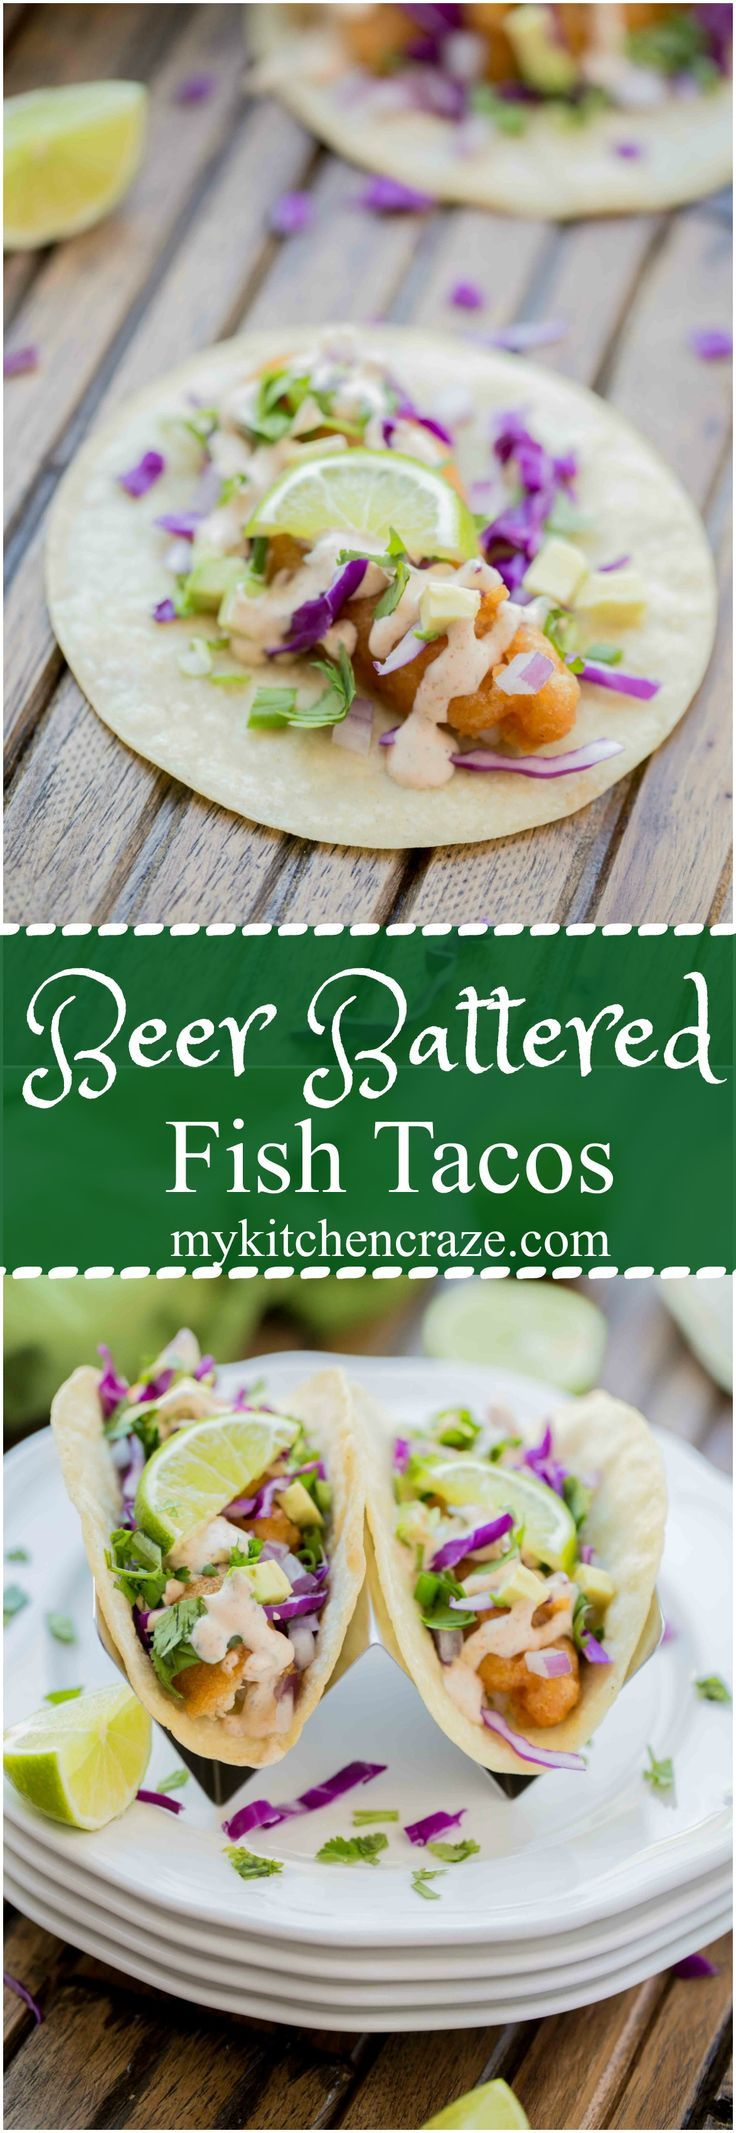 Do you love fish tacos, but have to go out to enjoy them? Well not anymore. These Beer Battered Fish Tacos are not only delicious, but easy to make in the comfort of your own home. Let me show you! #AskForAlaska  #IC #ad @alaskaseafood: